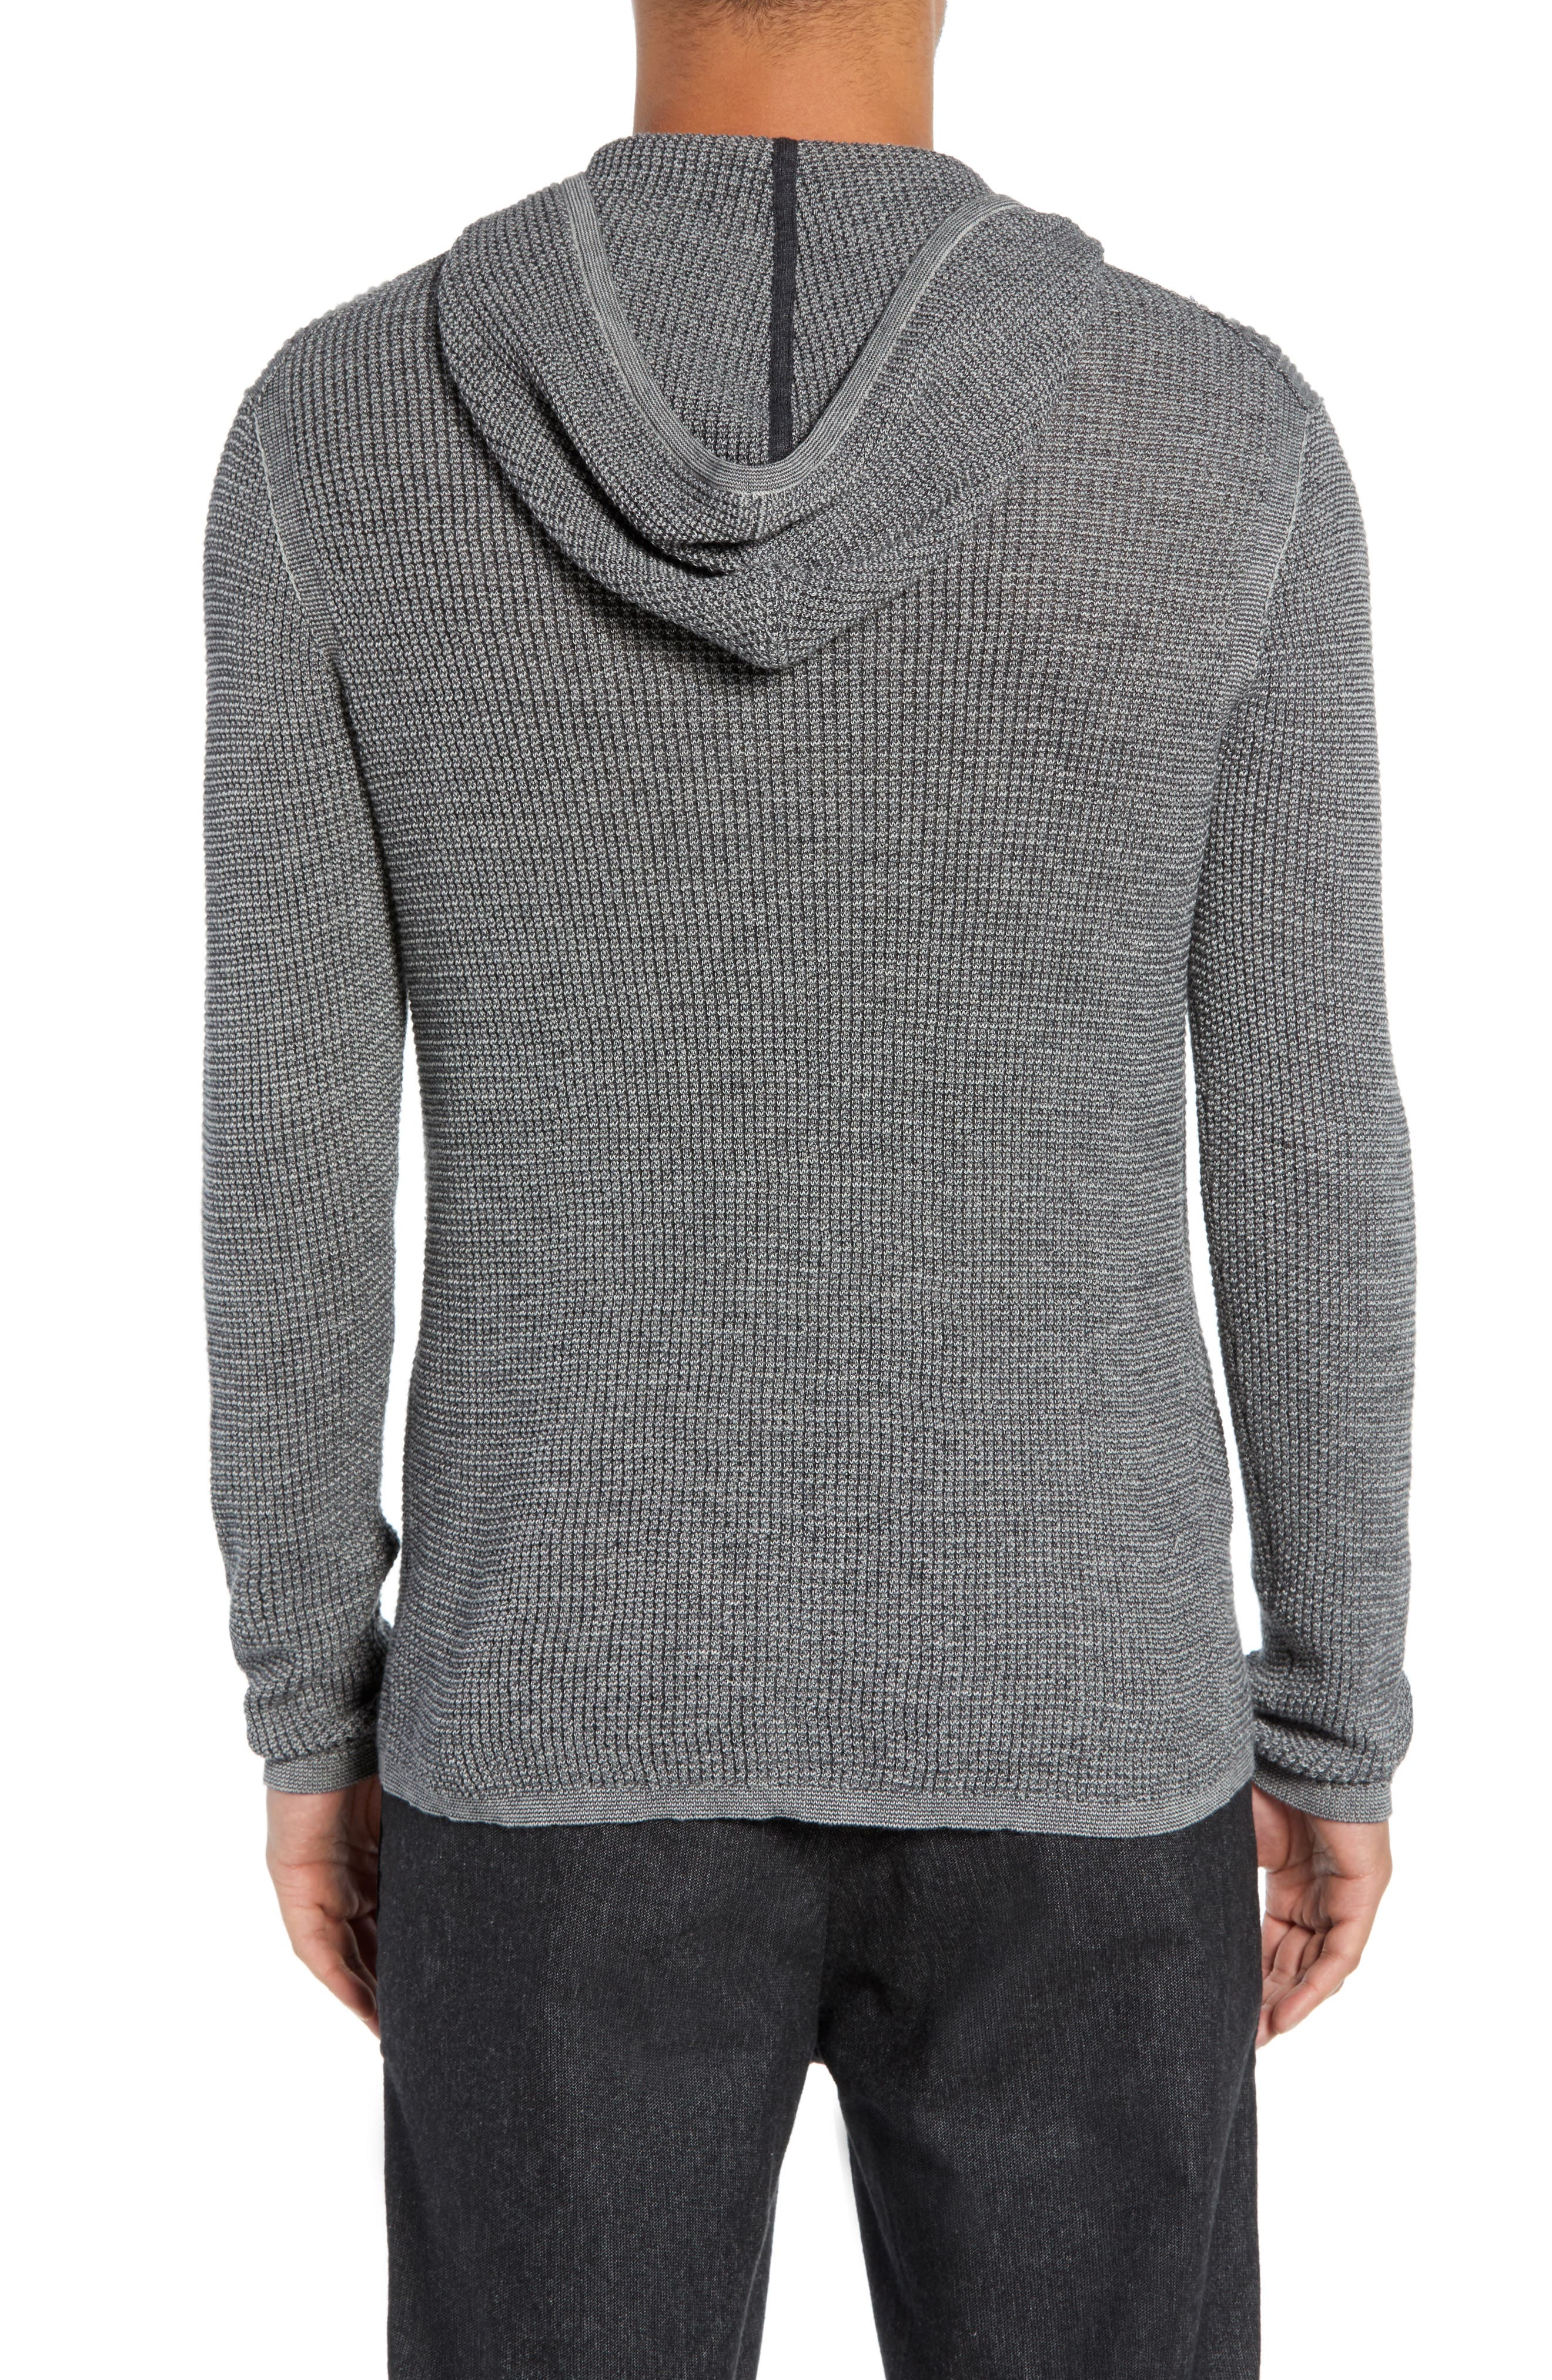 Thermal Hooded Sweater,                             Alternate thumbnail 2, color,                             CHARCOAL HEATHER